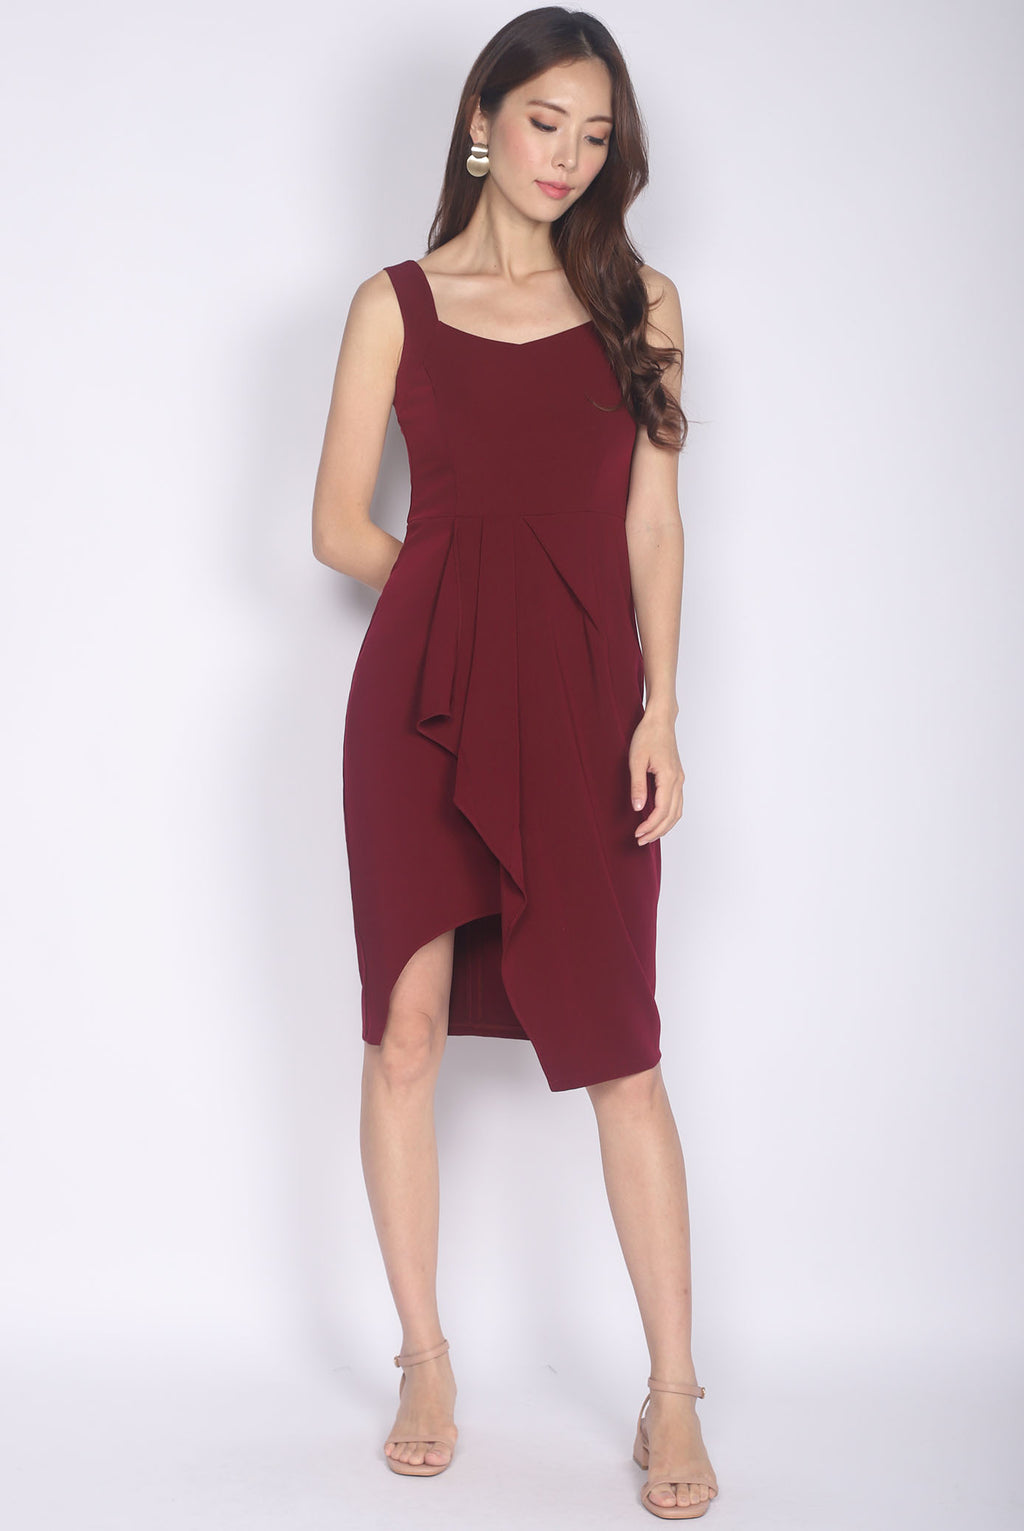 *Premium* Hannie Pleated Slit Work Dress In Wine Red